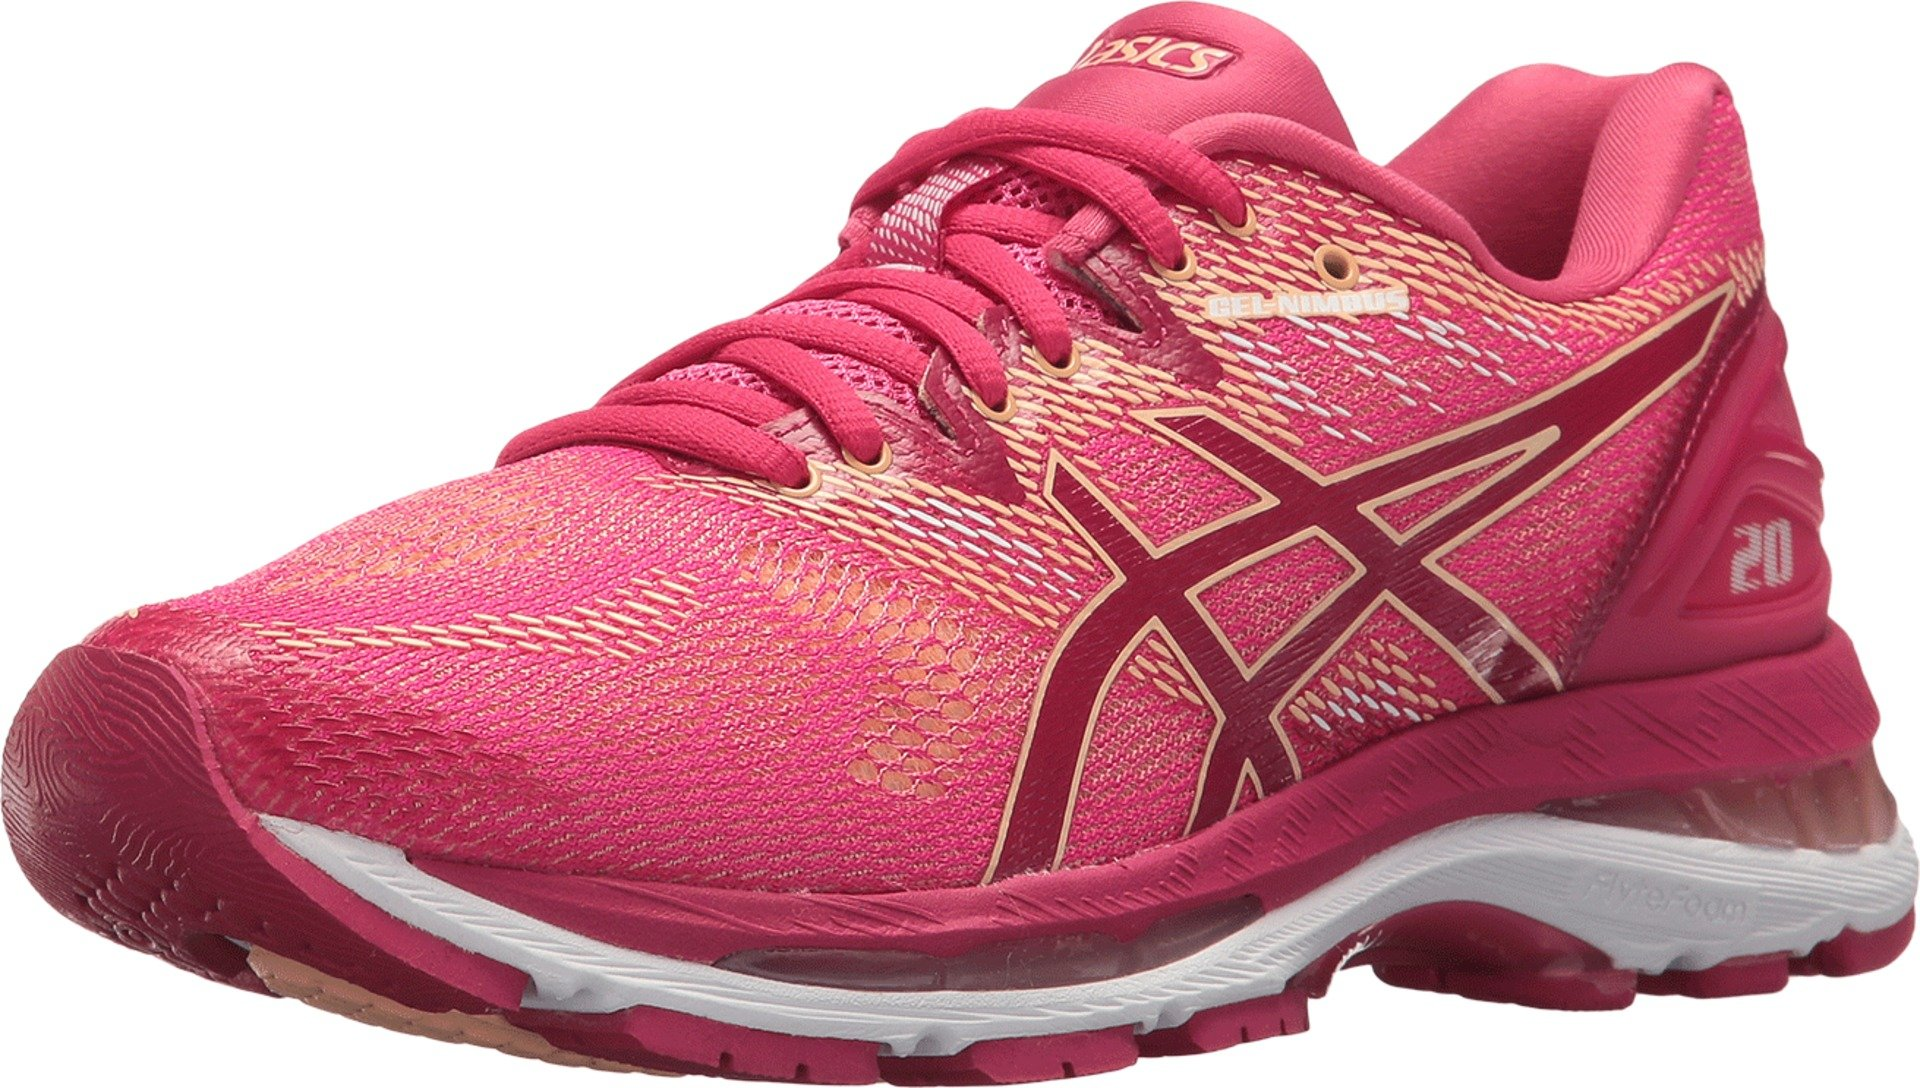 ASICS Women's Gel-Nimbus 20 Running Shoe, Rose, 8 M US by ASICS